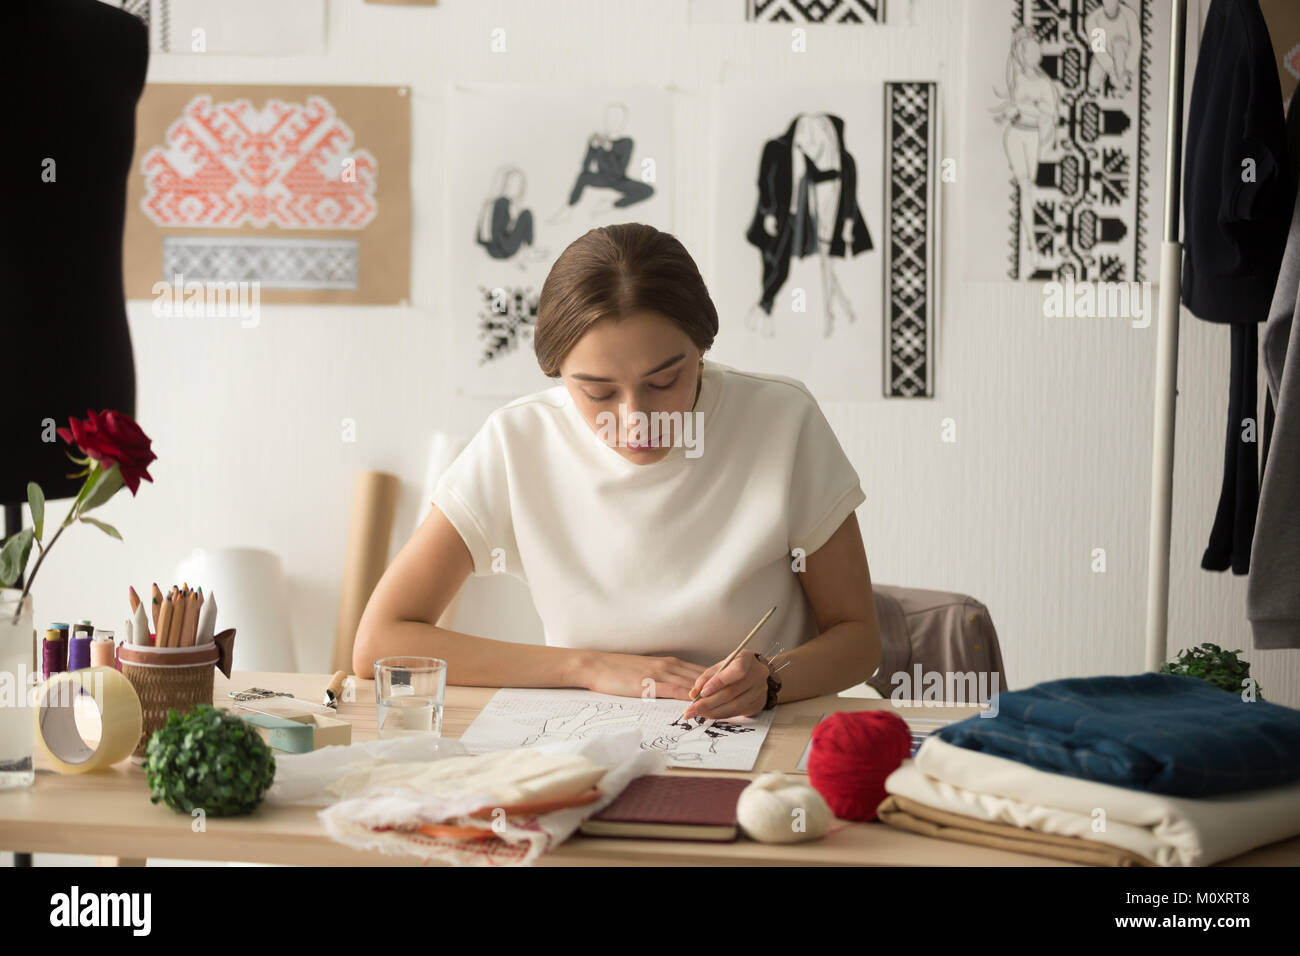 Inspired fashion designer working in studio drawing new collecti - Stock Image